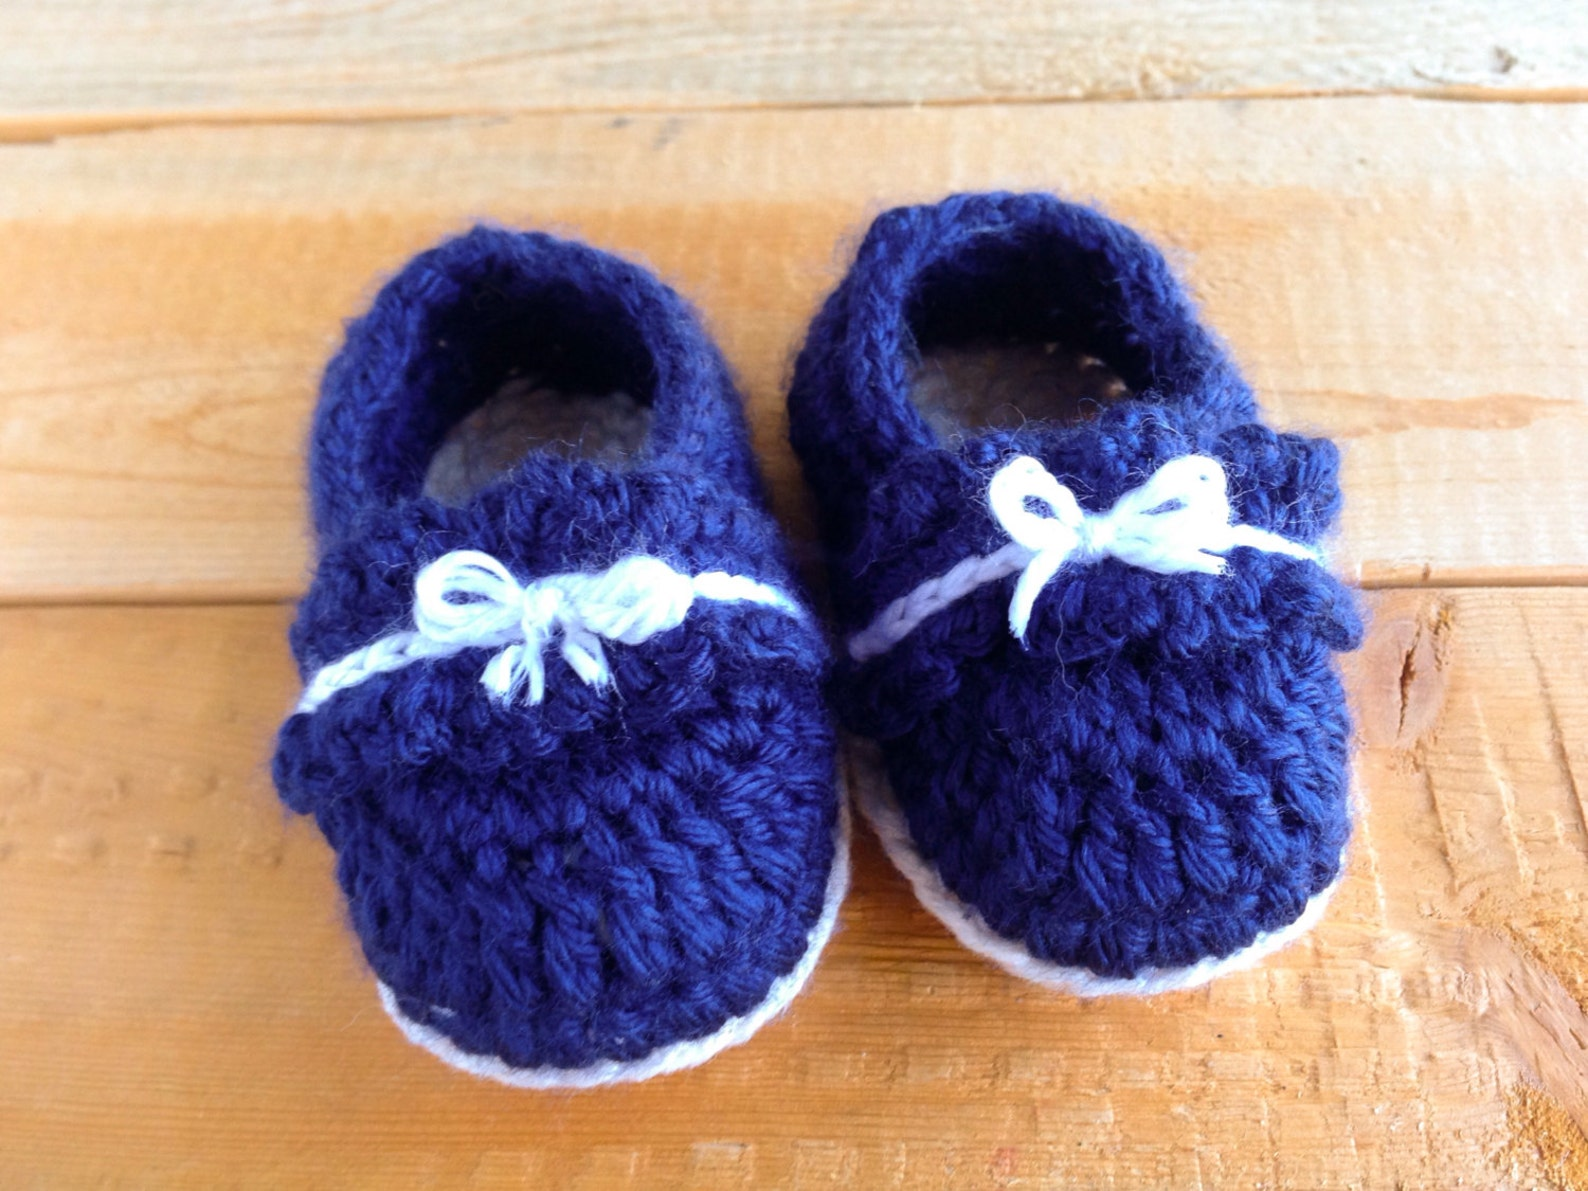 navy and white baby ruffle ballet flats, customizable, made to order, 0-3 months, 3-6 months, 6-12 months, summer, spring fall,